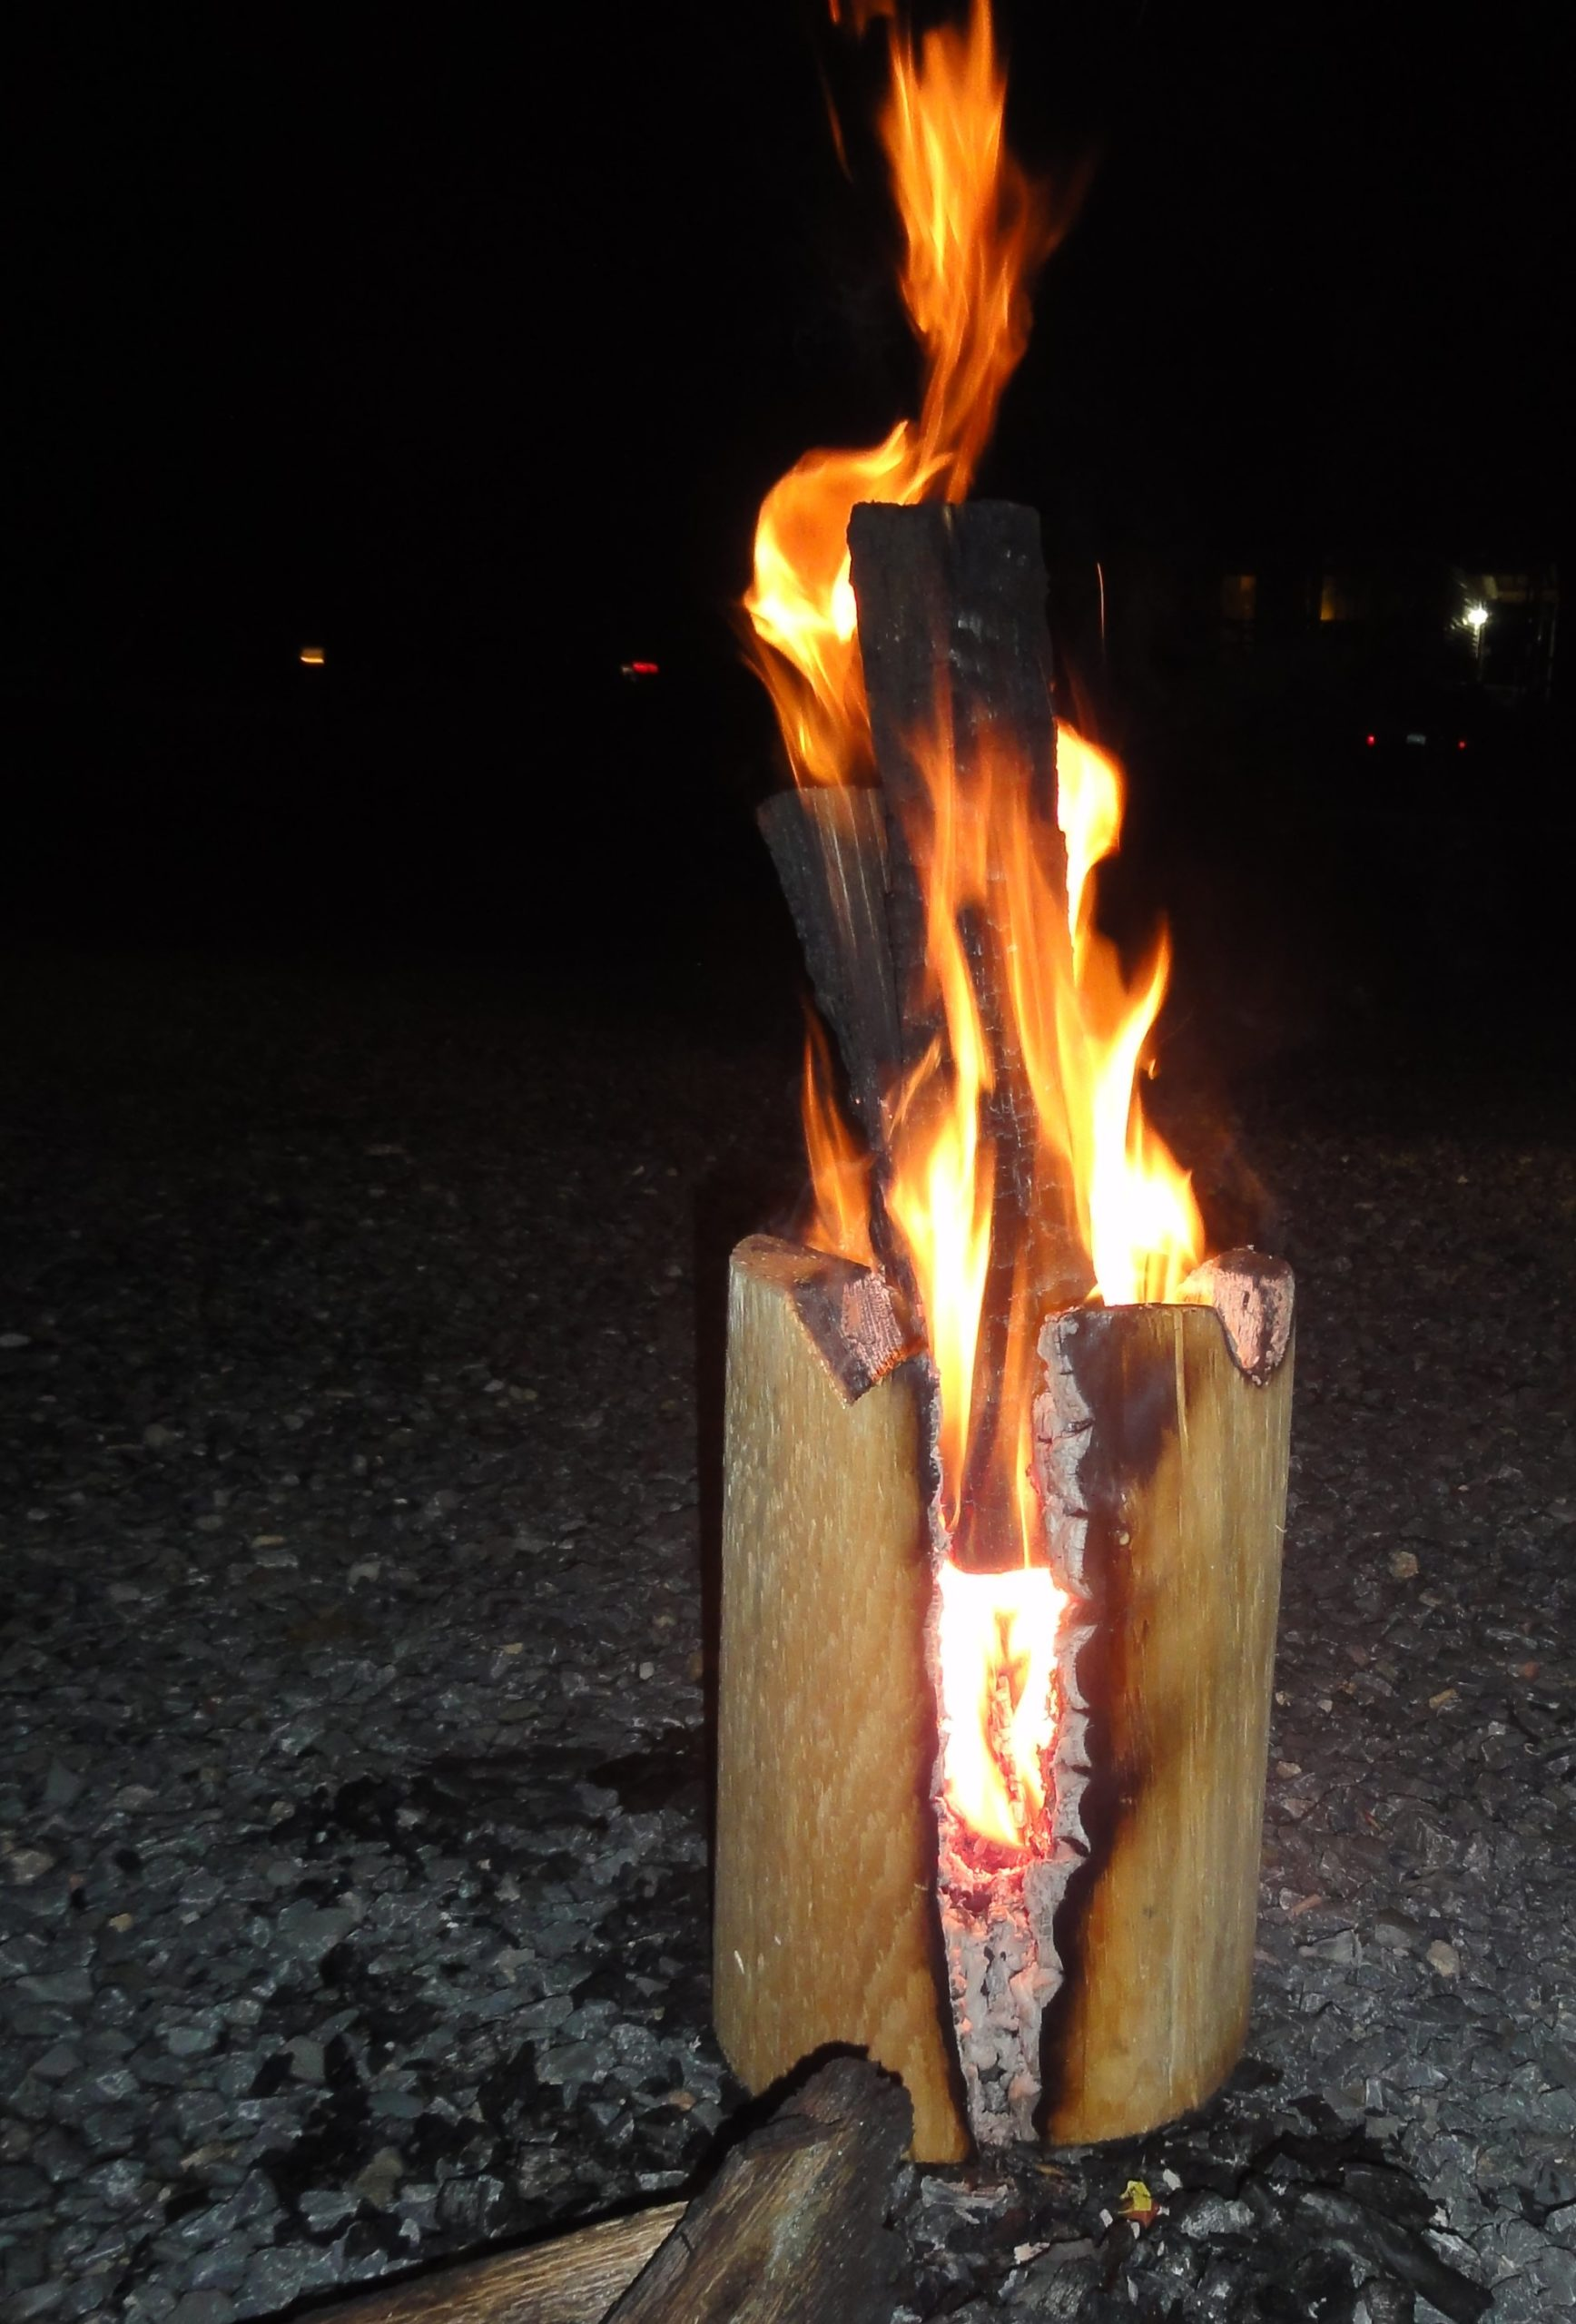 A log on fire